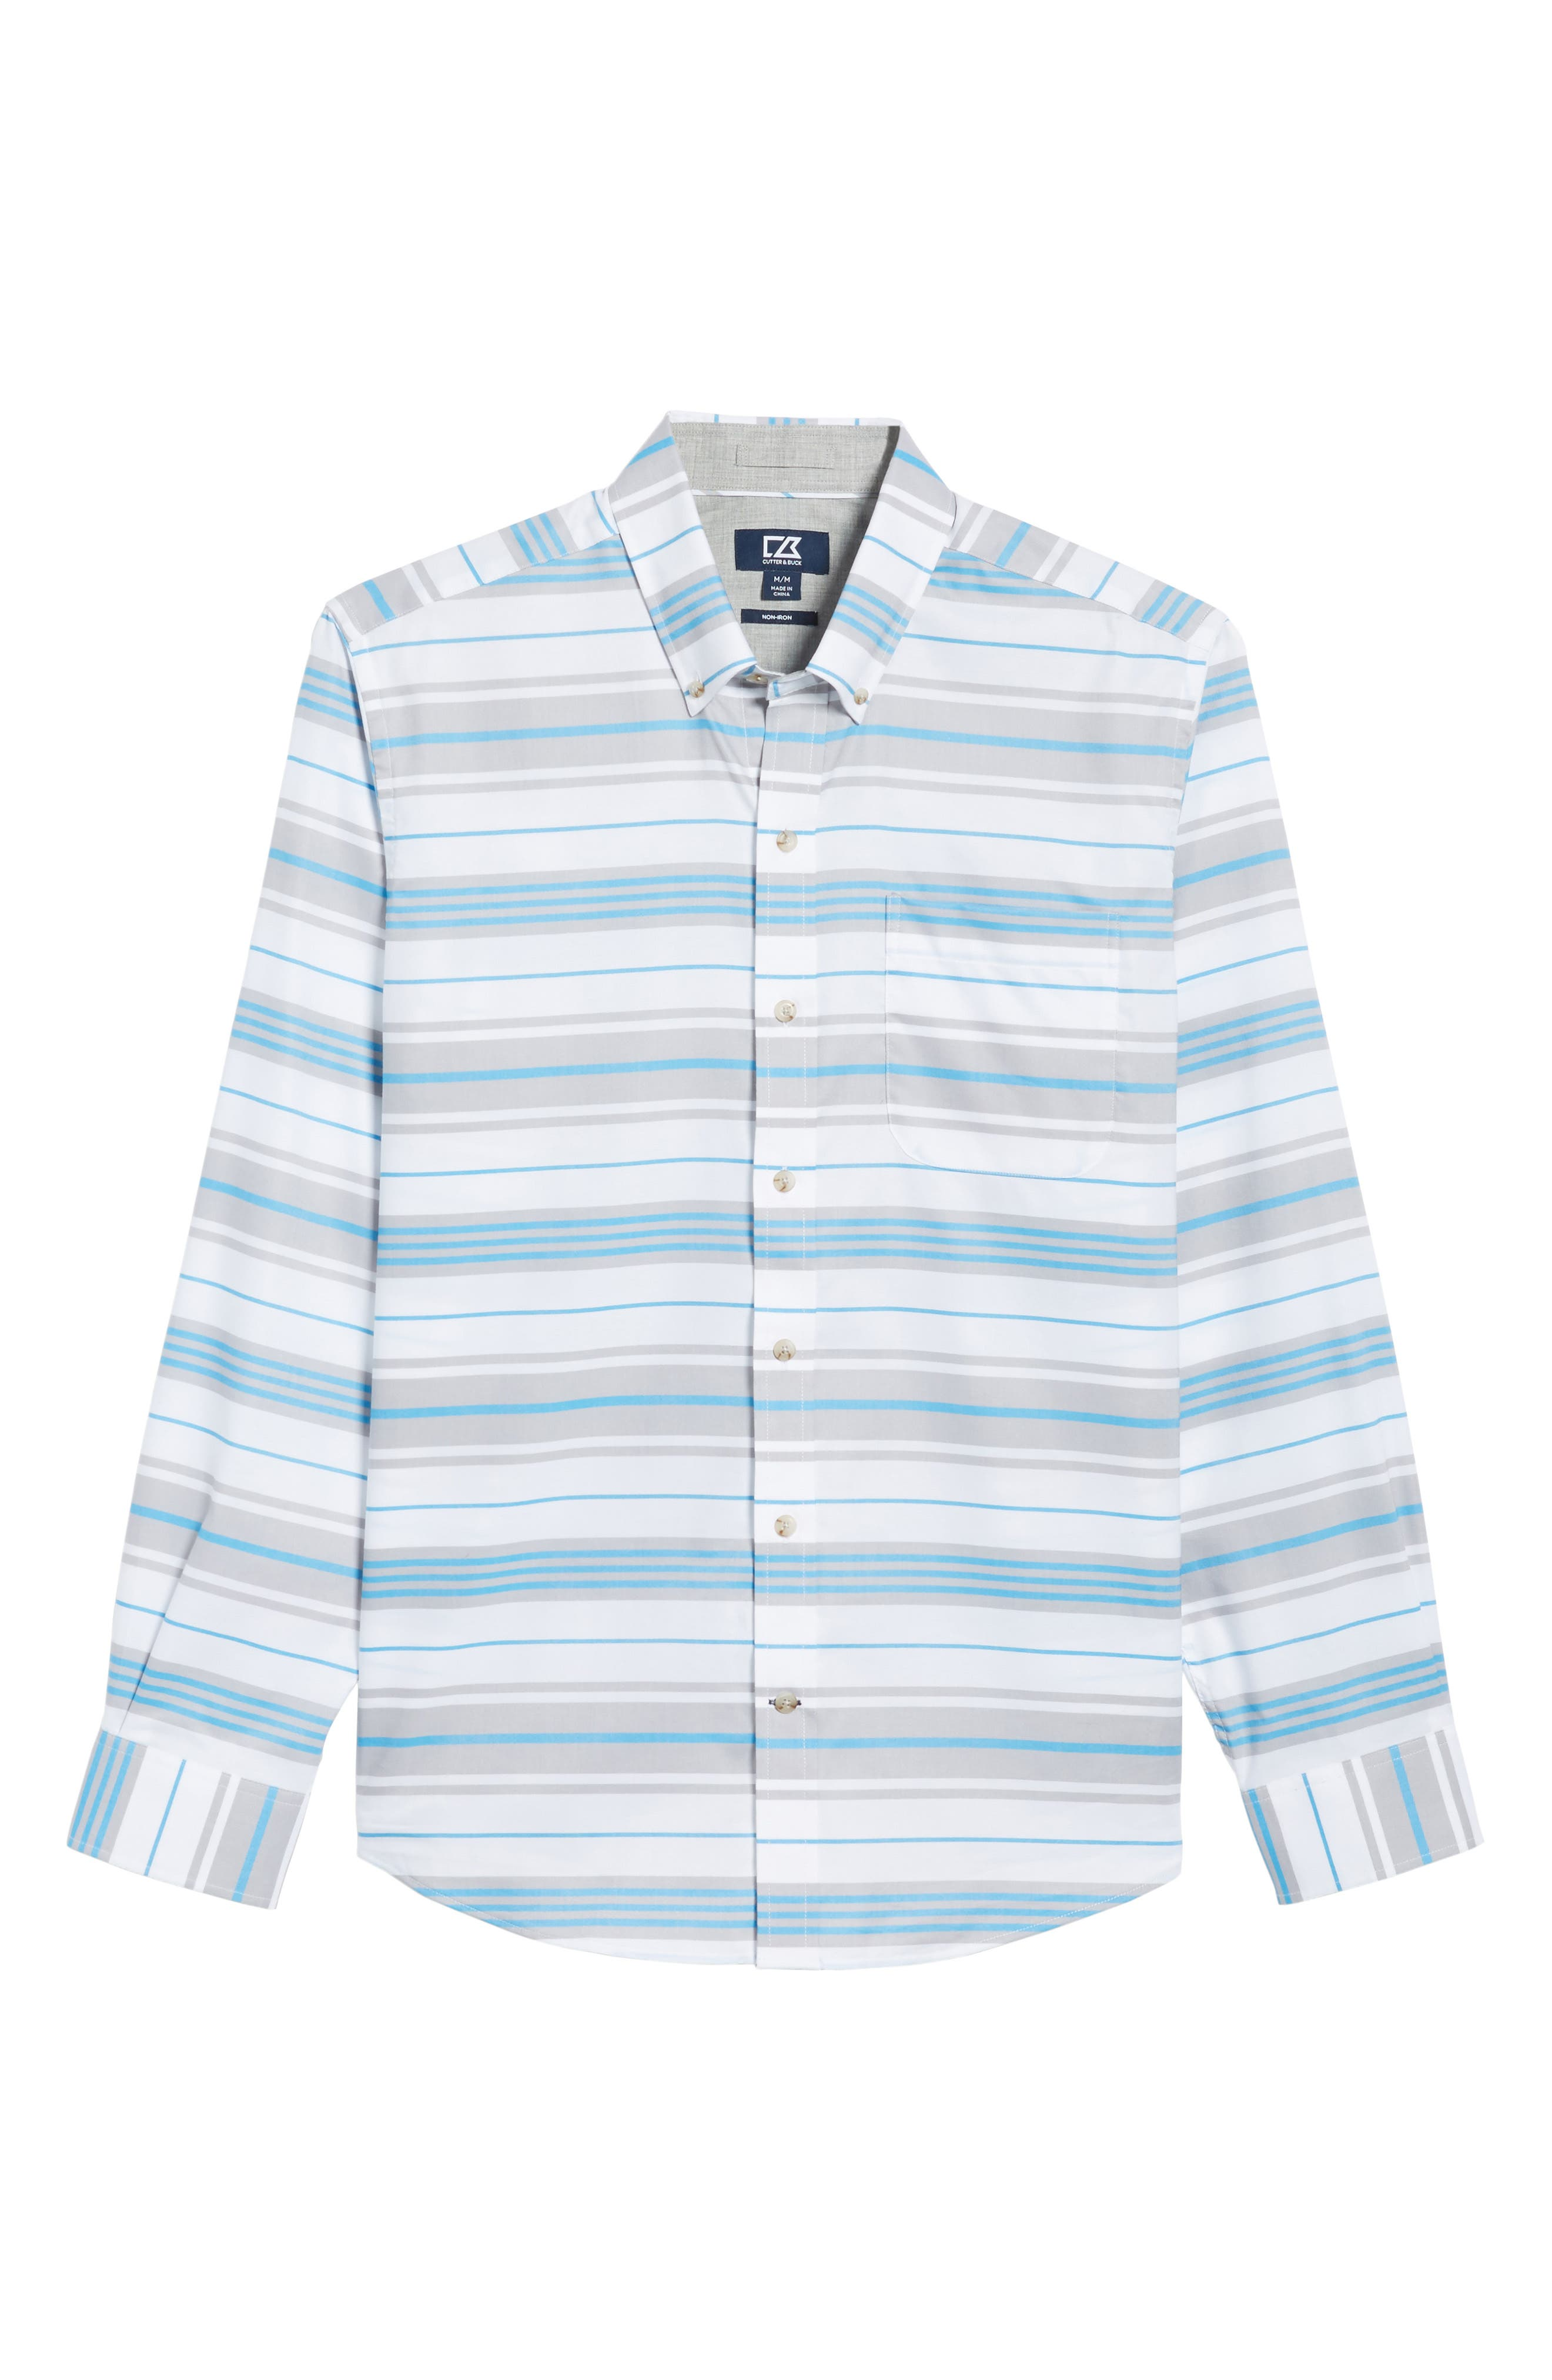 Parker Classic Fit Non-Iron Stripe Sport Shirt,                             Alternate thumbnail 6, color,                             425